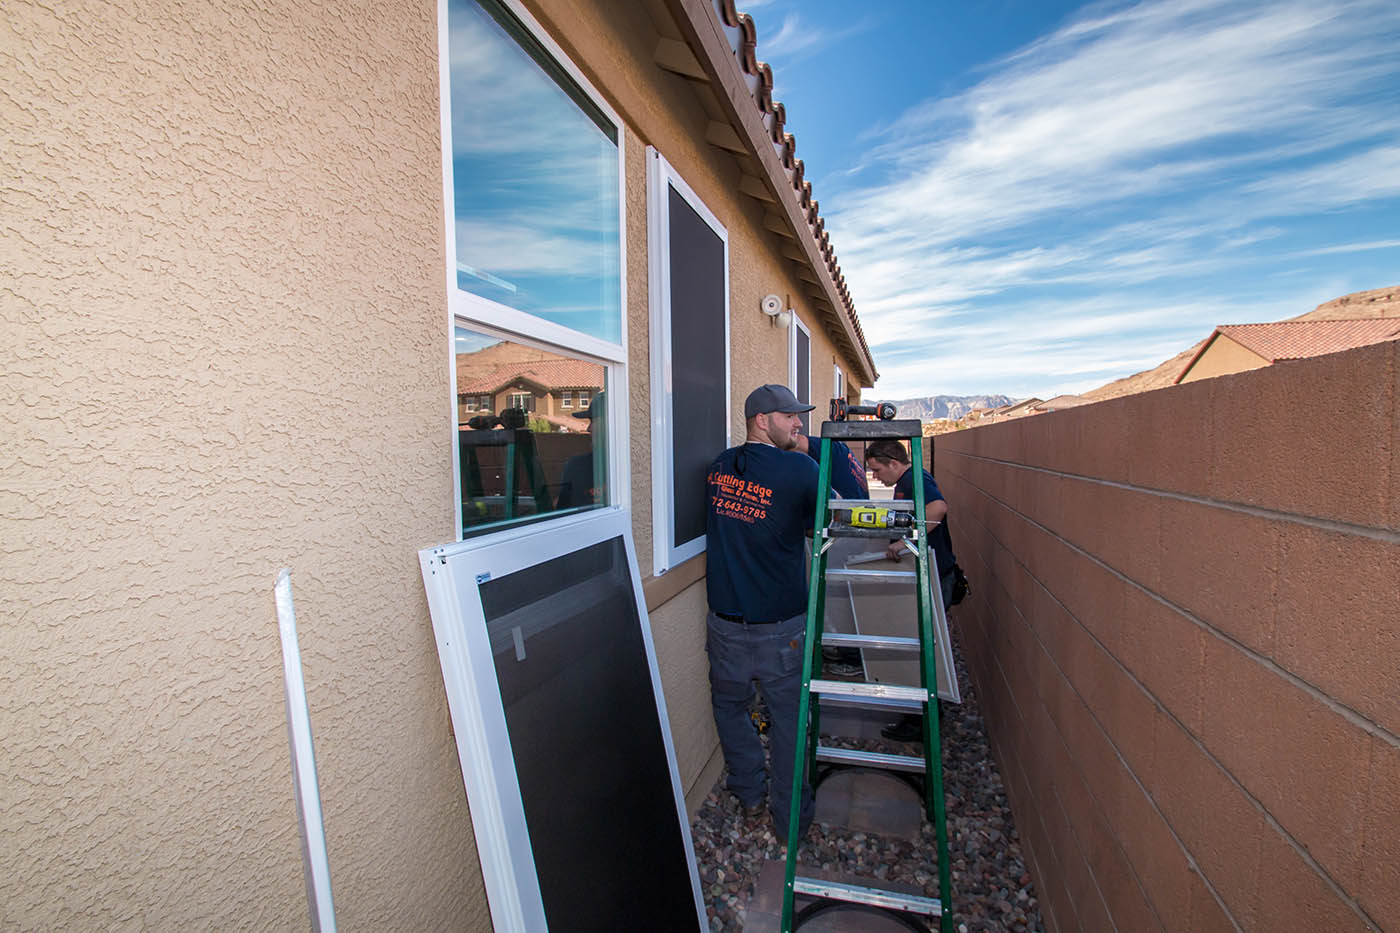 Nevada S 1 Security Screens Company A Cutting Edge